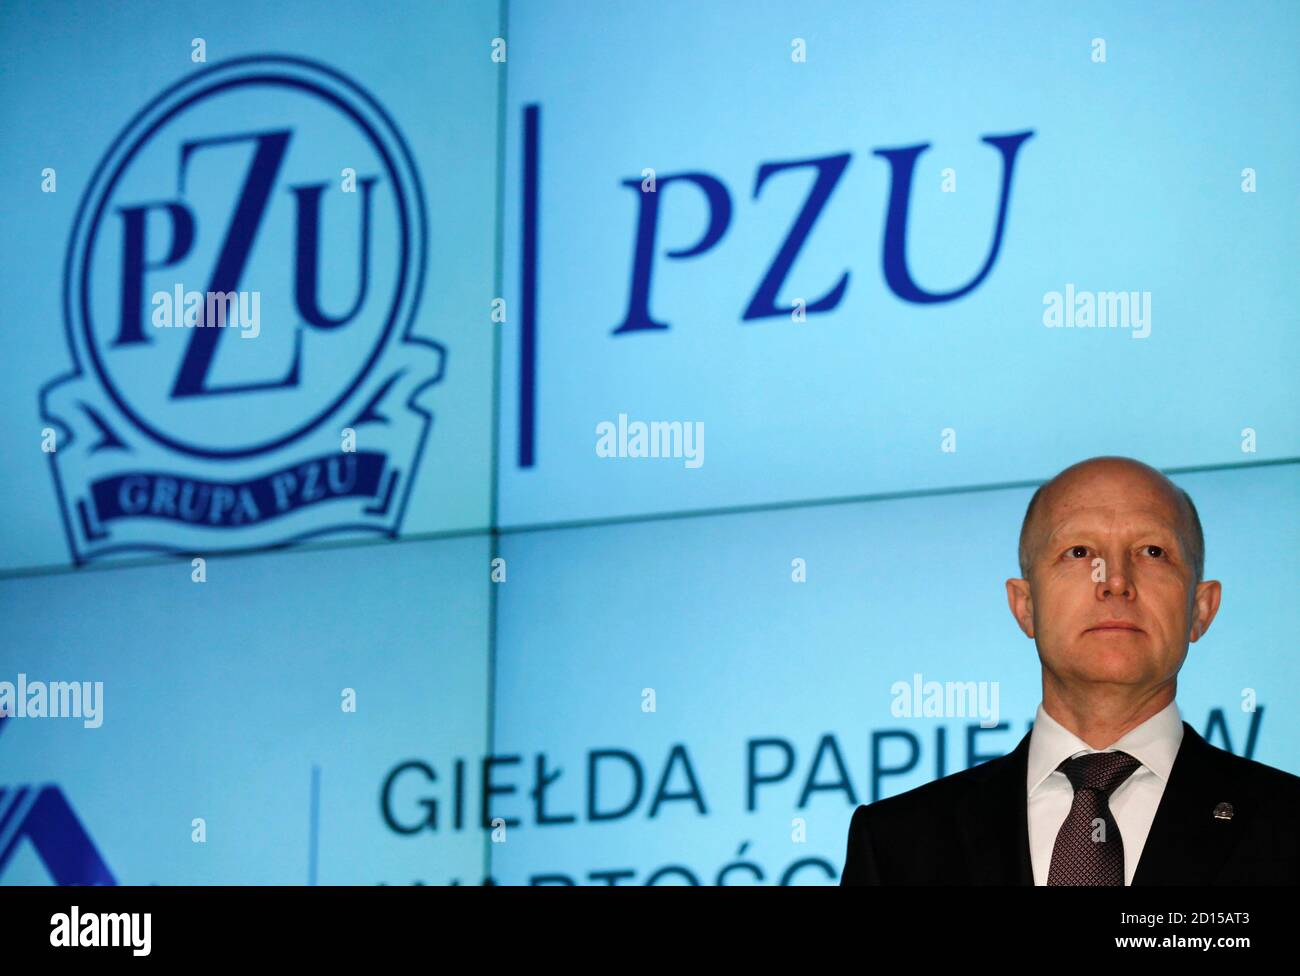 Andrzej Klesyk, chief executive of PZU Group, attends the launch of the trading at Warsaw Stock Exchange May 12, 2010. Poland's top insurer PZU posted strong gains in its market debut on Wednesday, to cap Europe's largest initial public offer in two years after braving volatile markets that forced others to put off flotations.  REUTERS/Peter Andrews (POLAND - Tags: POLITICS BUSINESS) Banque D'Images